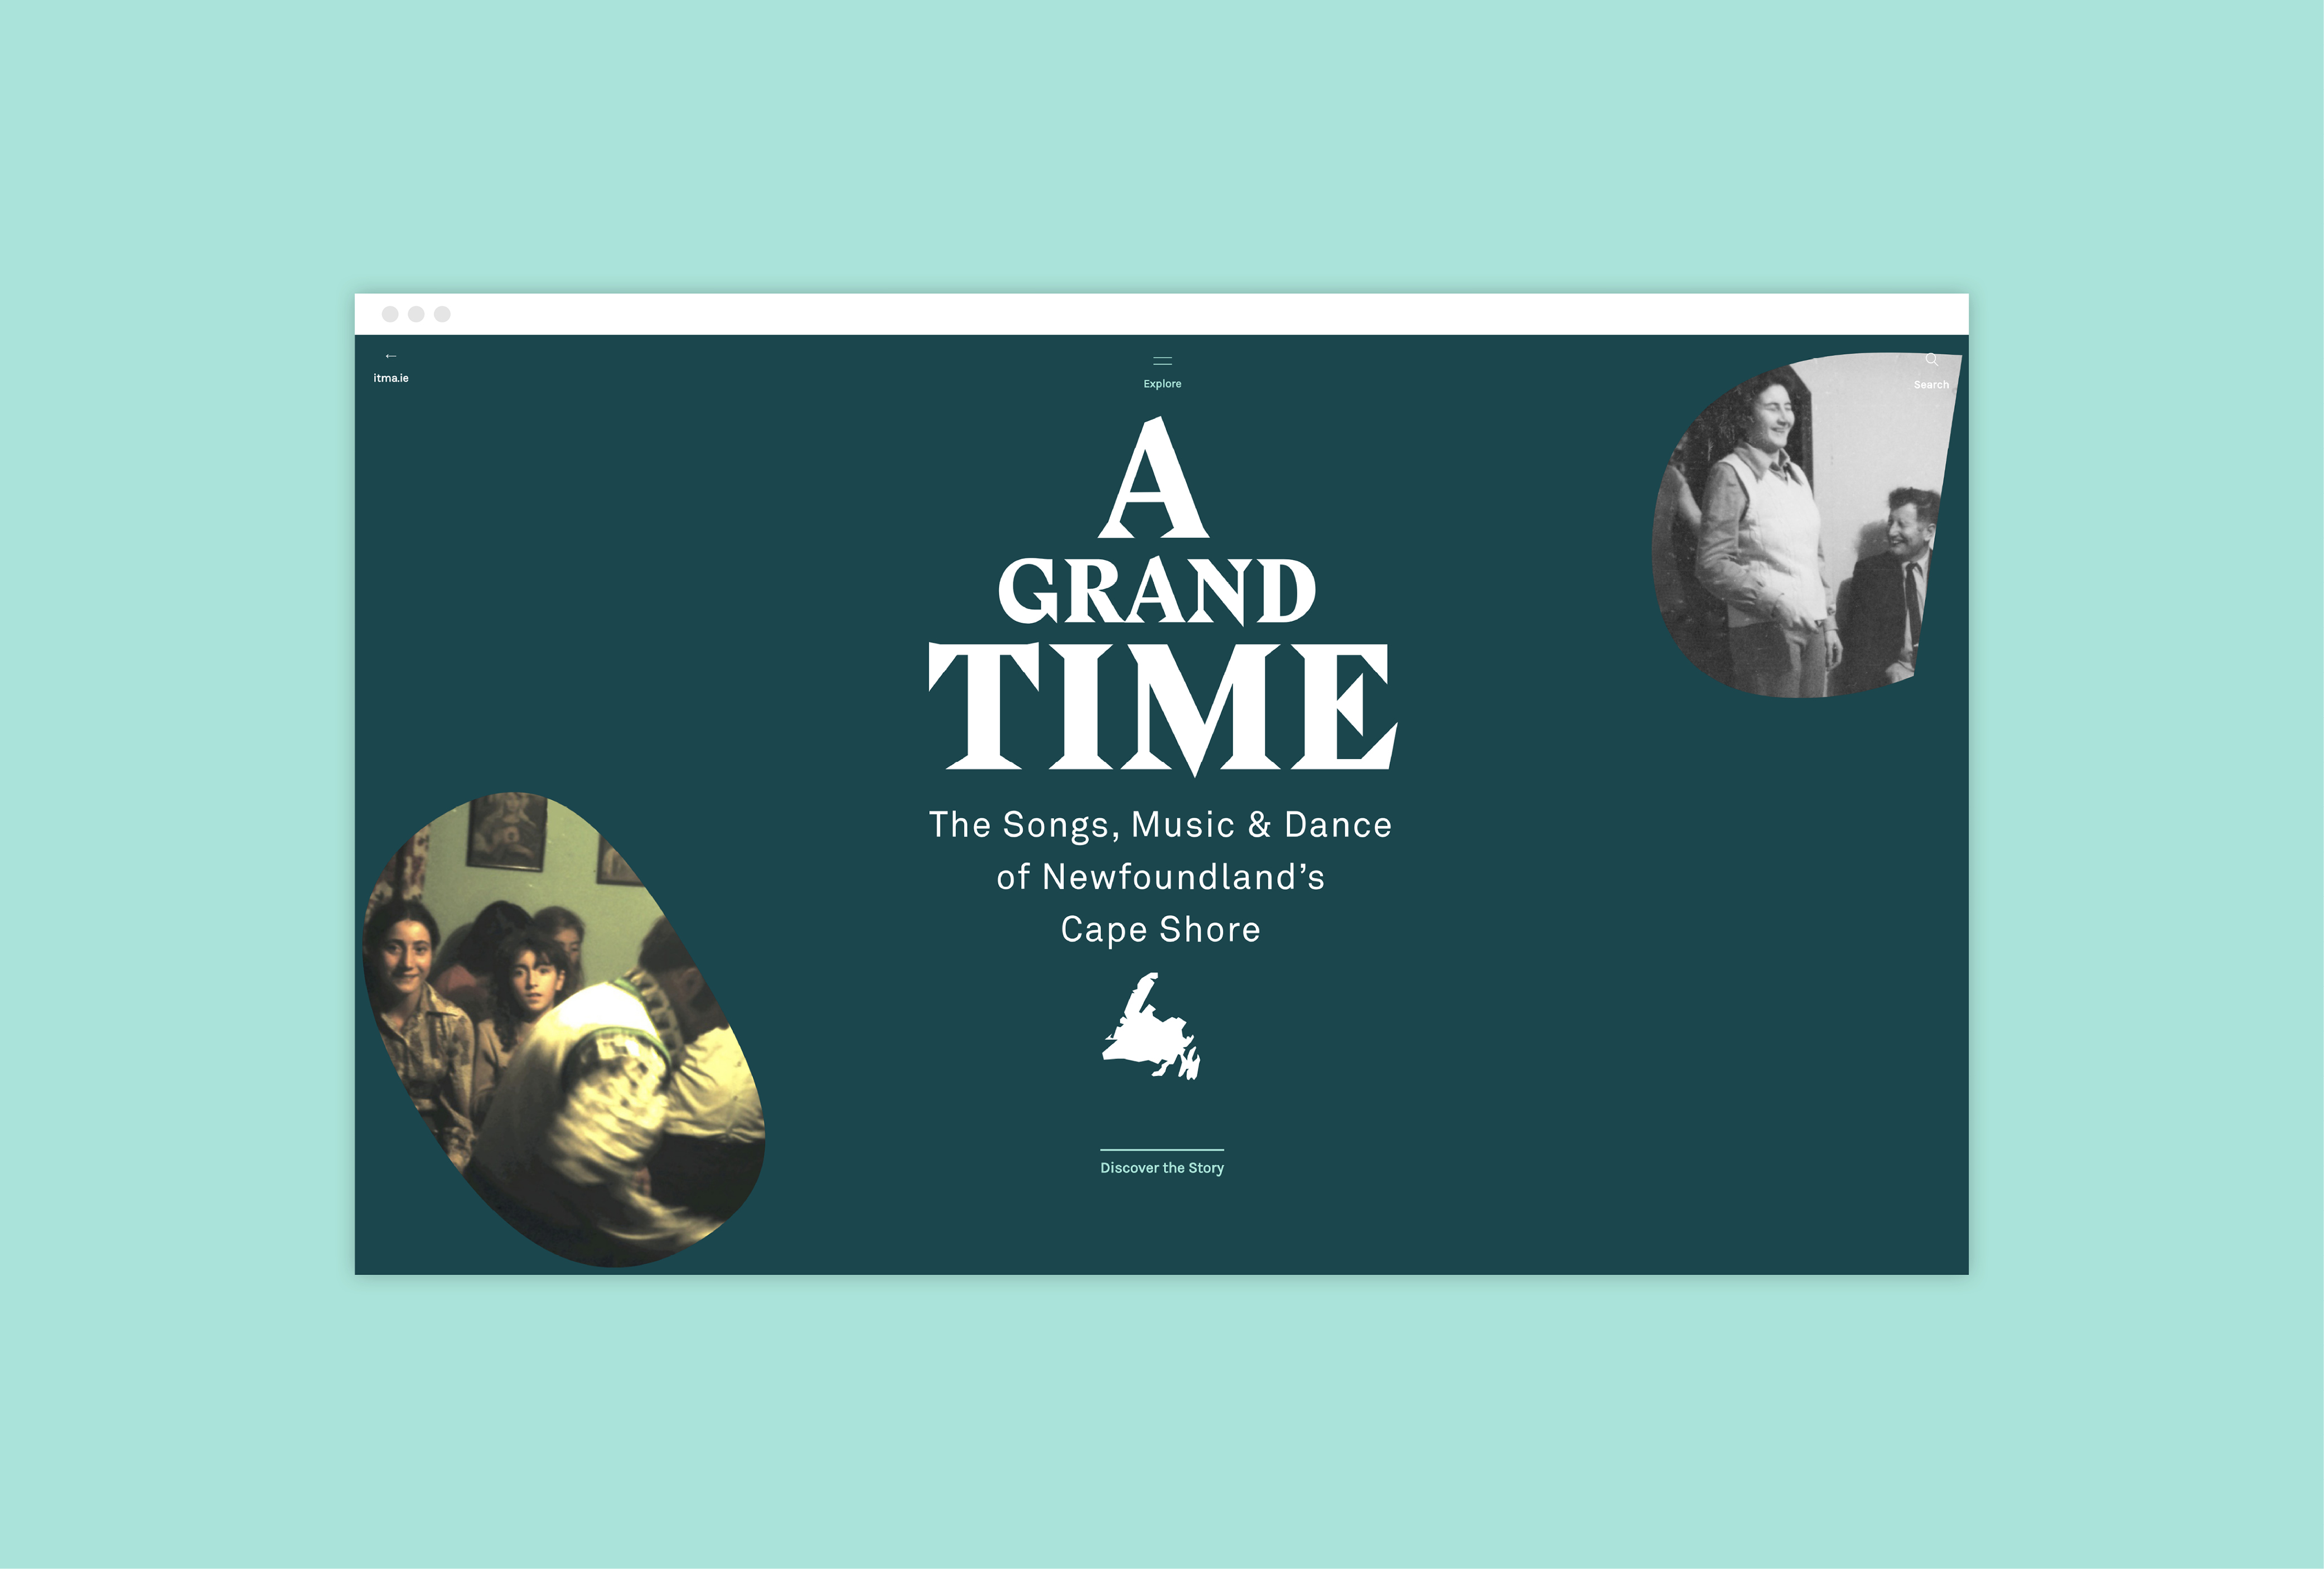 Cover image: A Grand Time